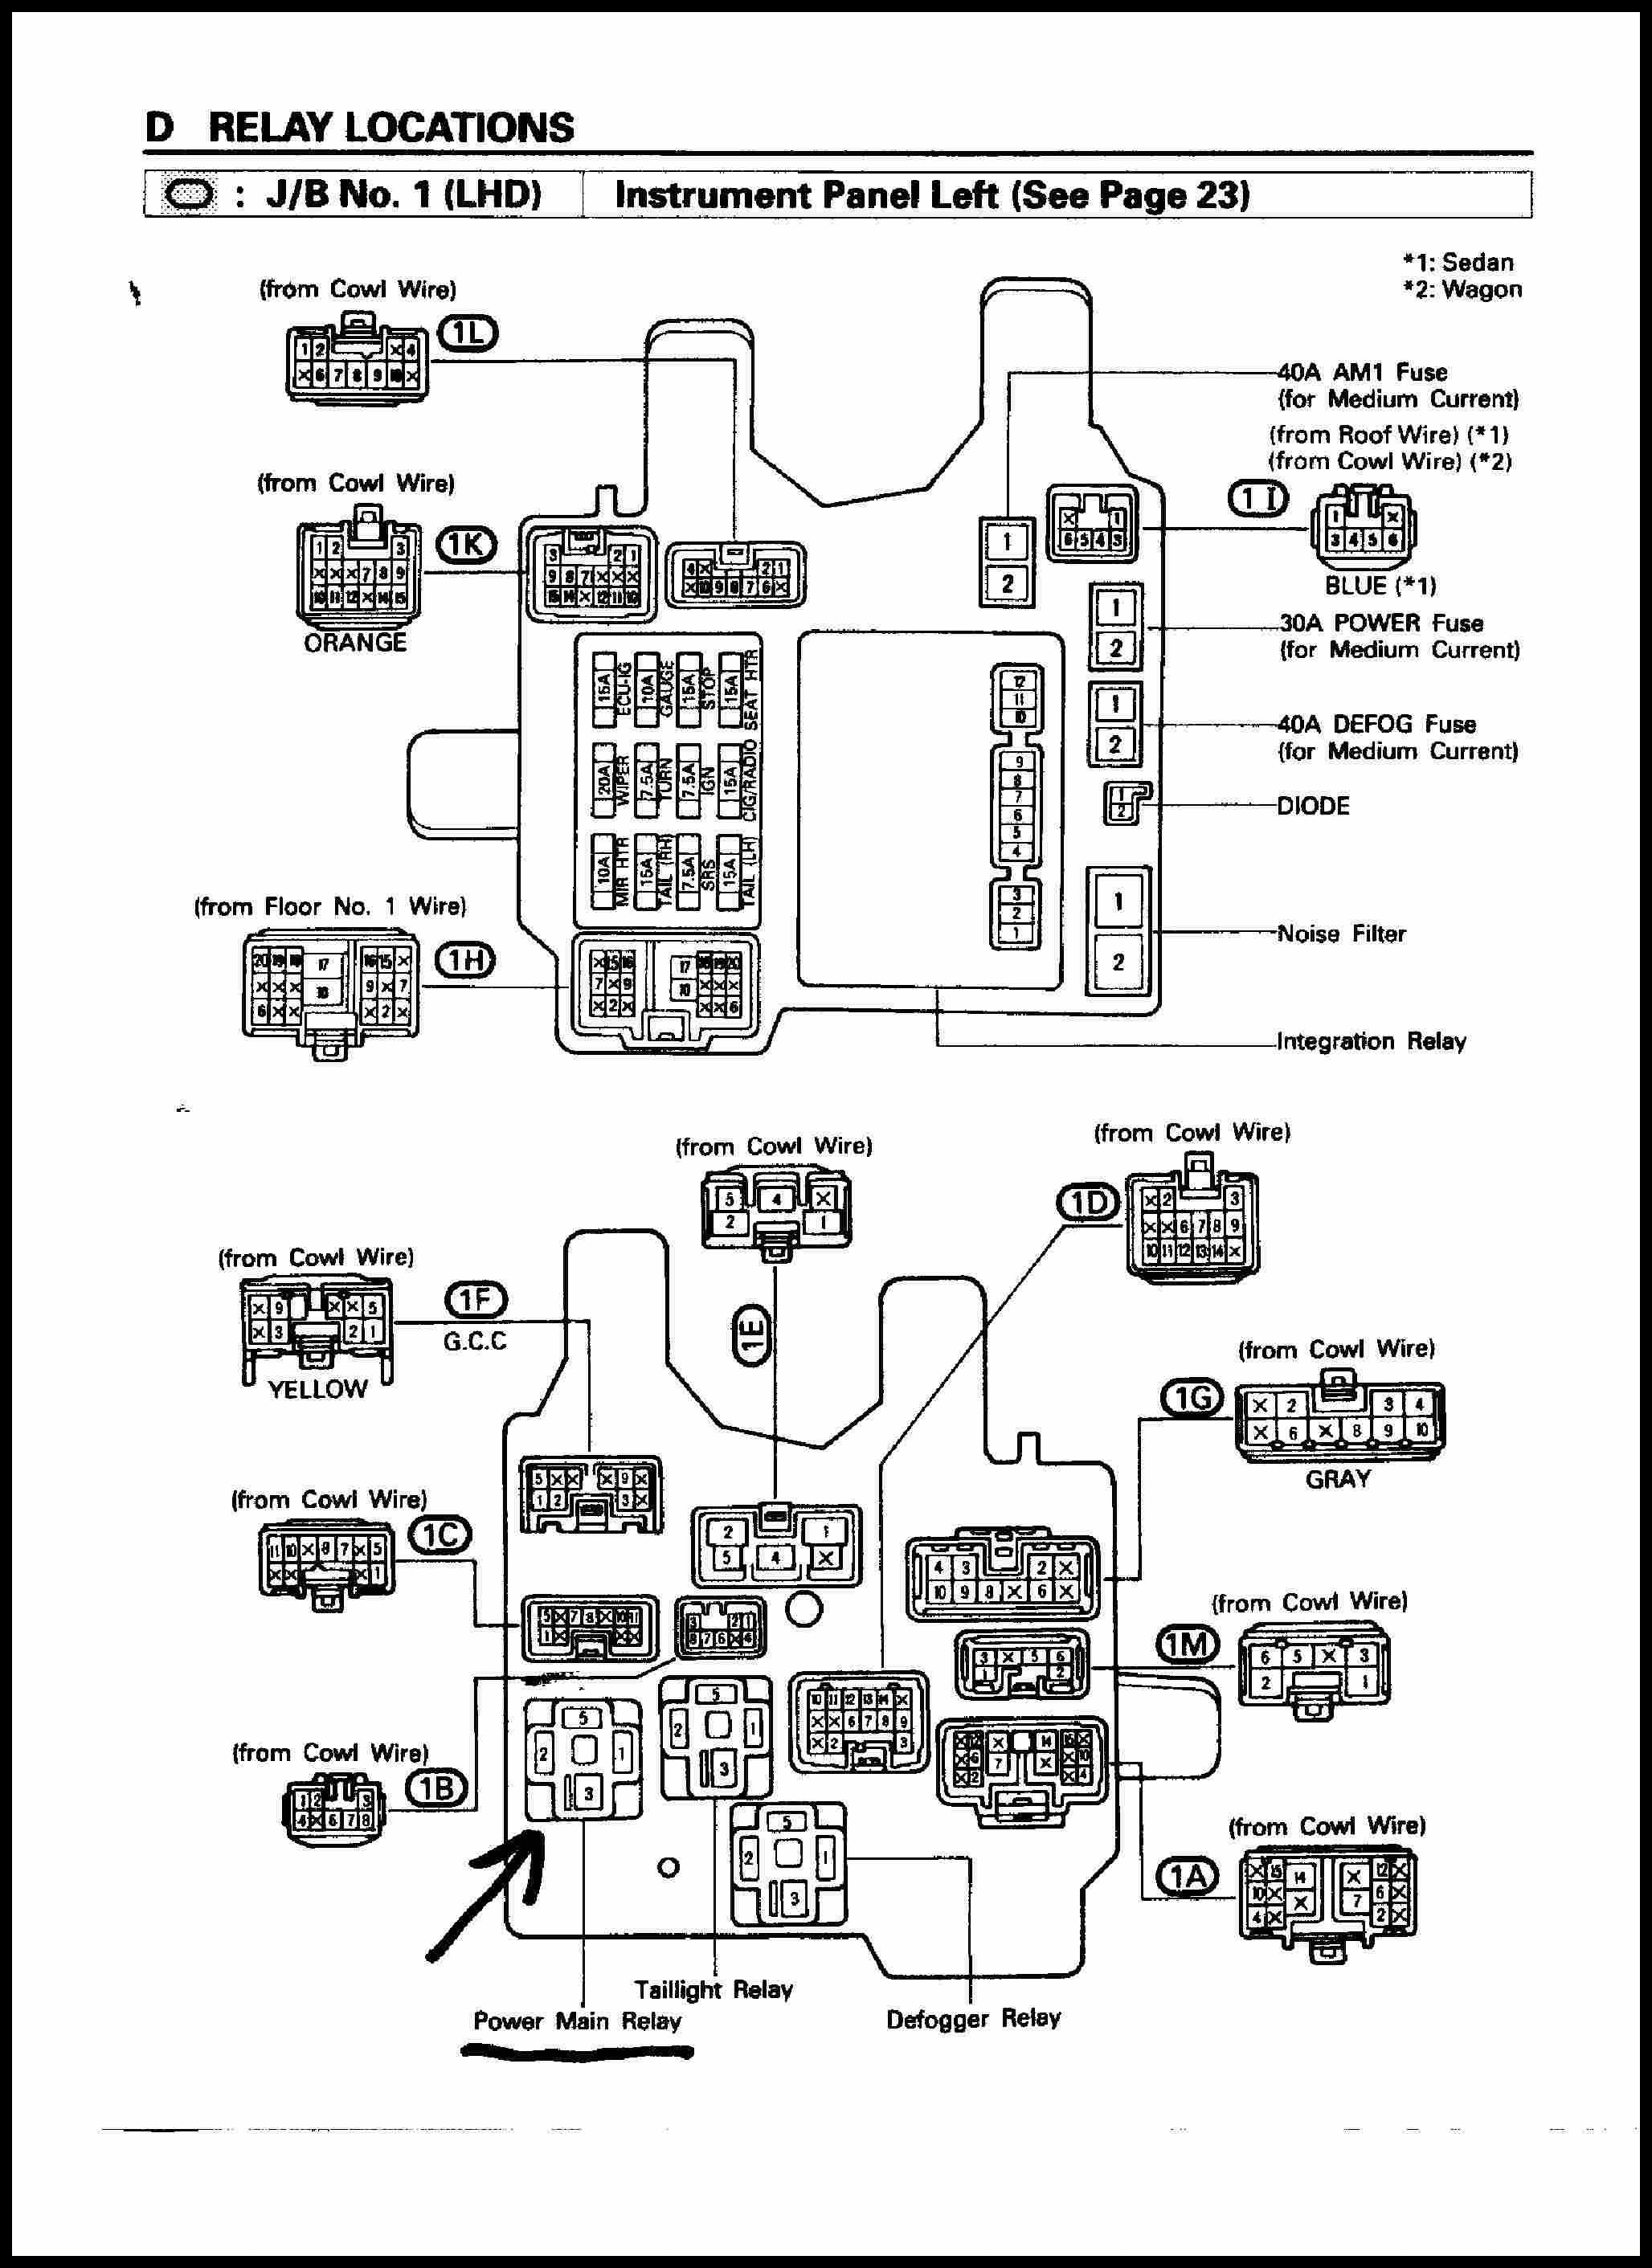 toyota camry wiring diagram explained wiring diagrams rh dmdelectro co 1998 Toyota Camry Fuse Diagram 1998 Toyota Camry Fuse Diagram